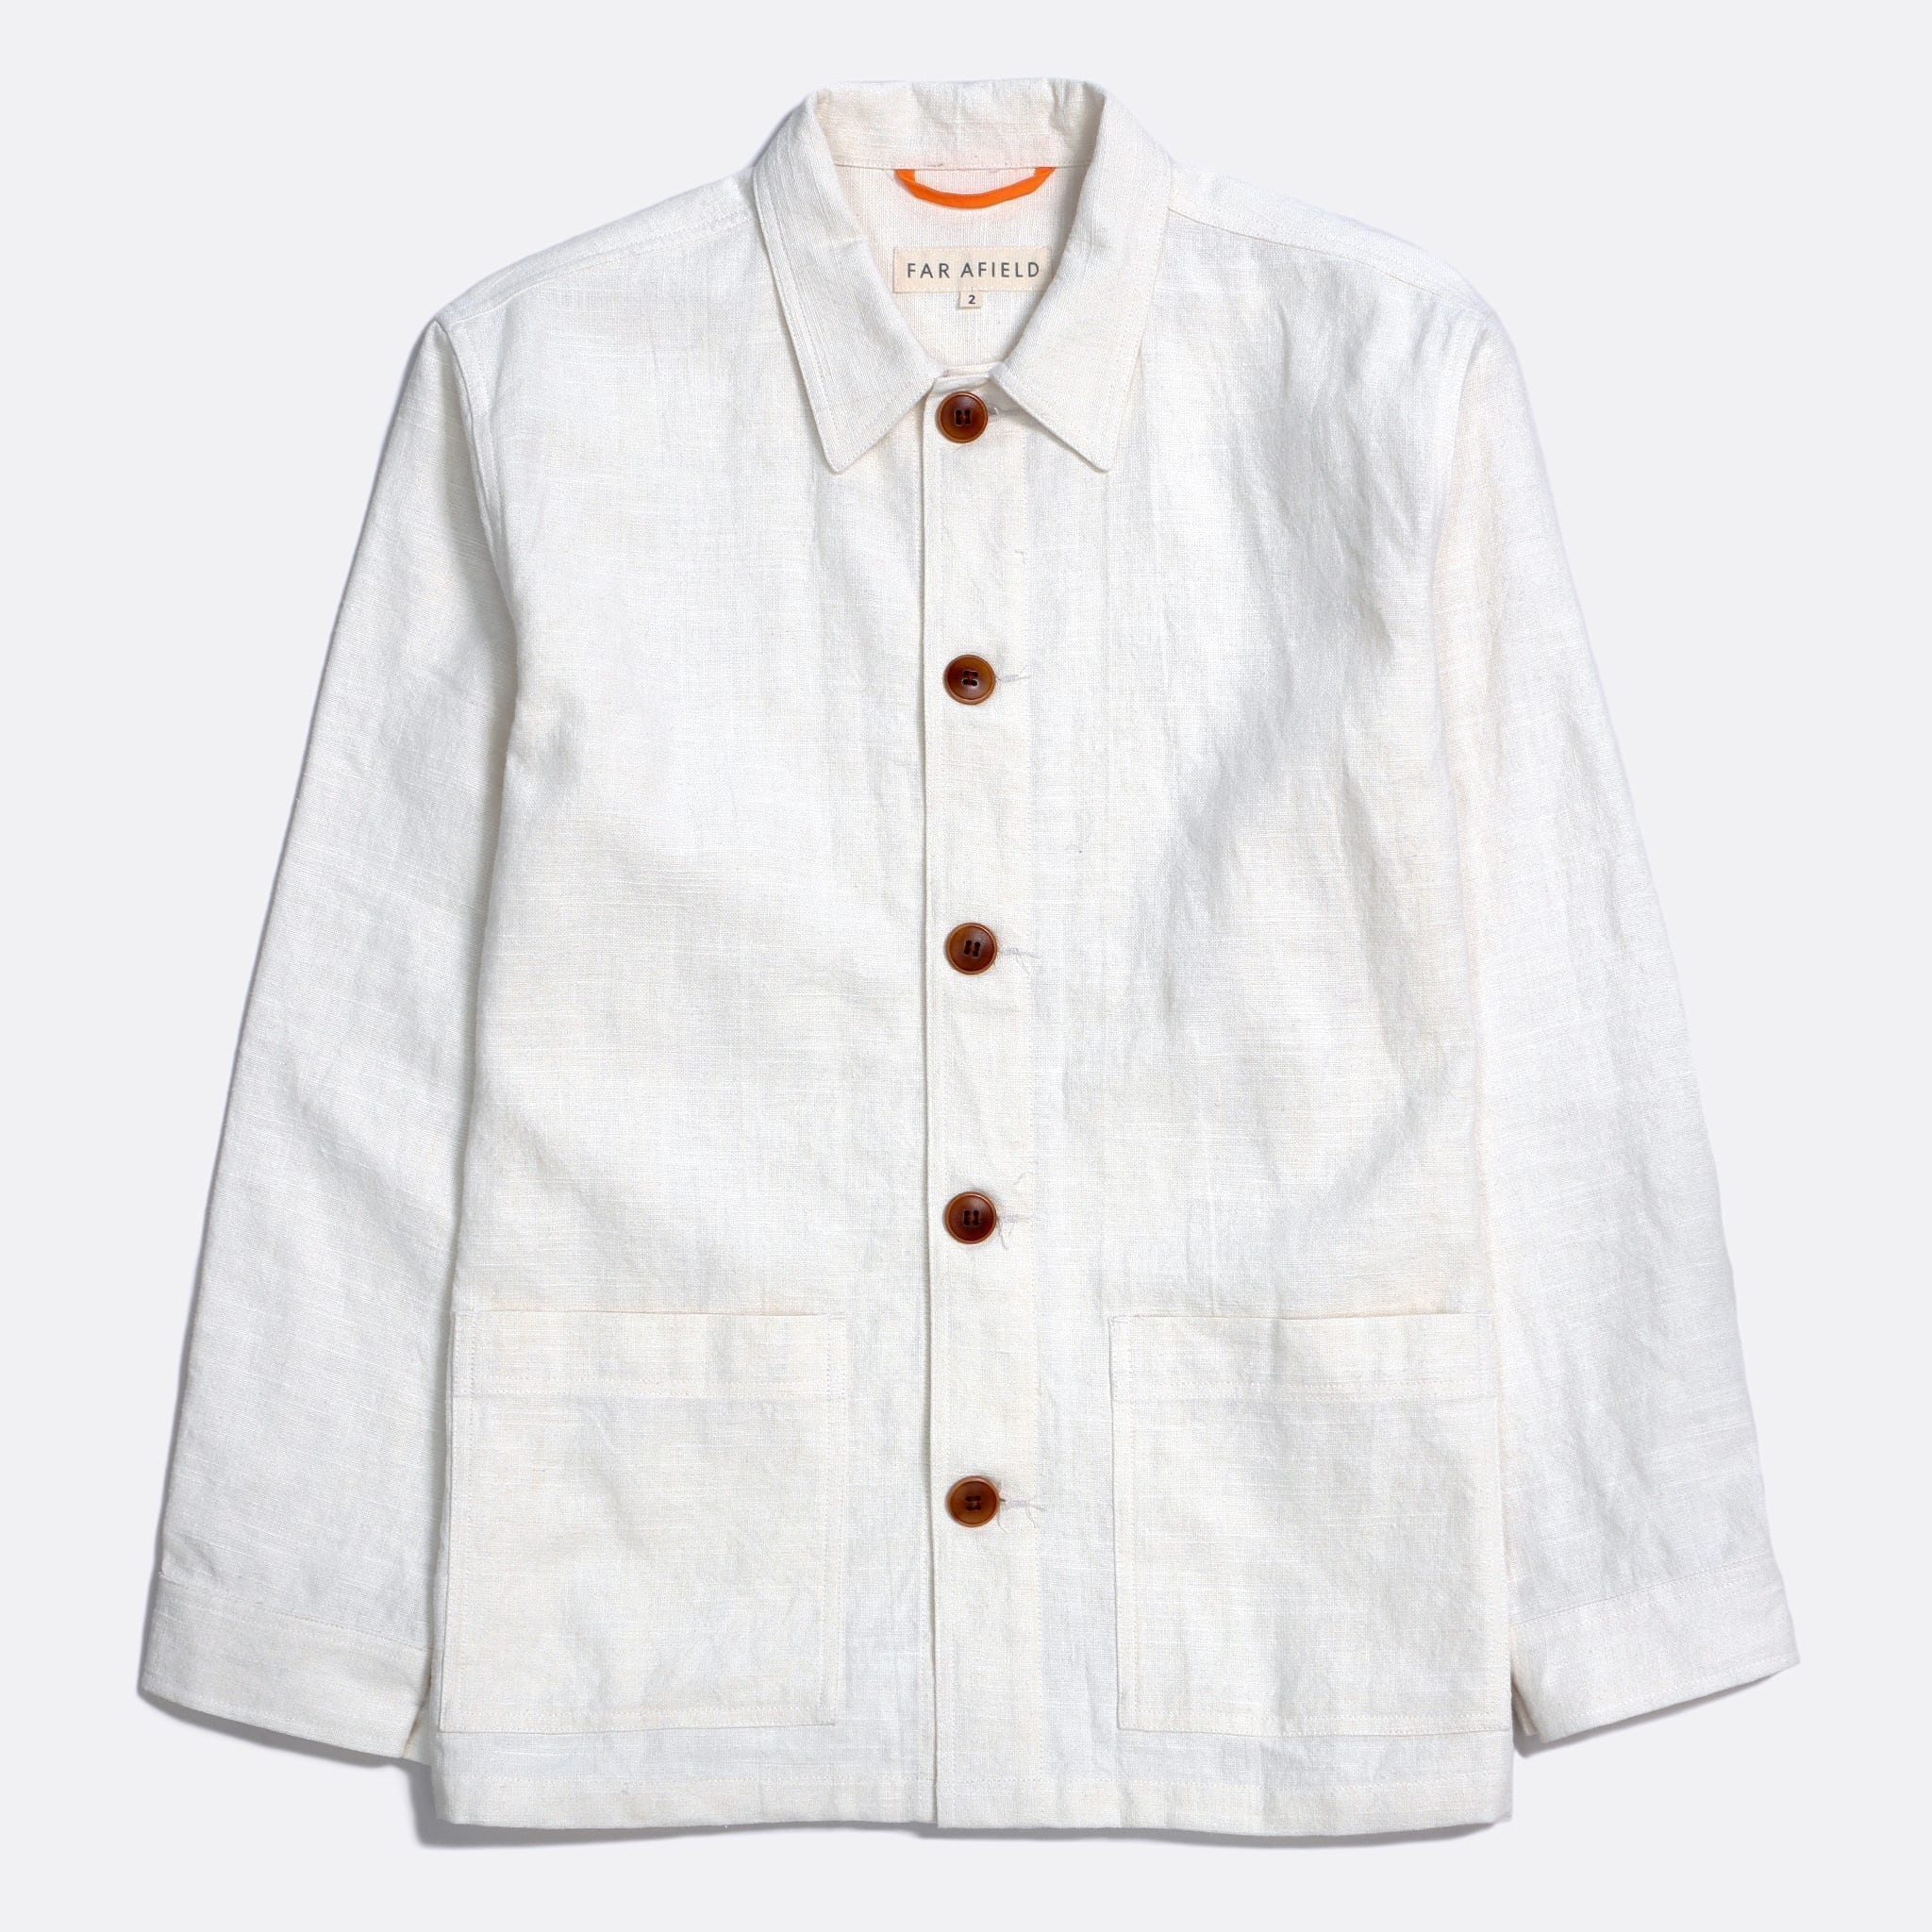 Far Afield Bisset Jacket a White Sand Linen Fabric Lightweight Buttoned Classic Work